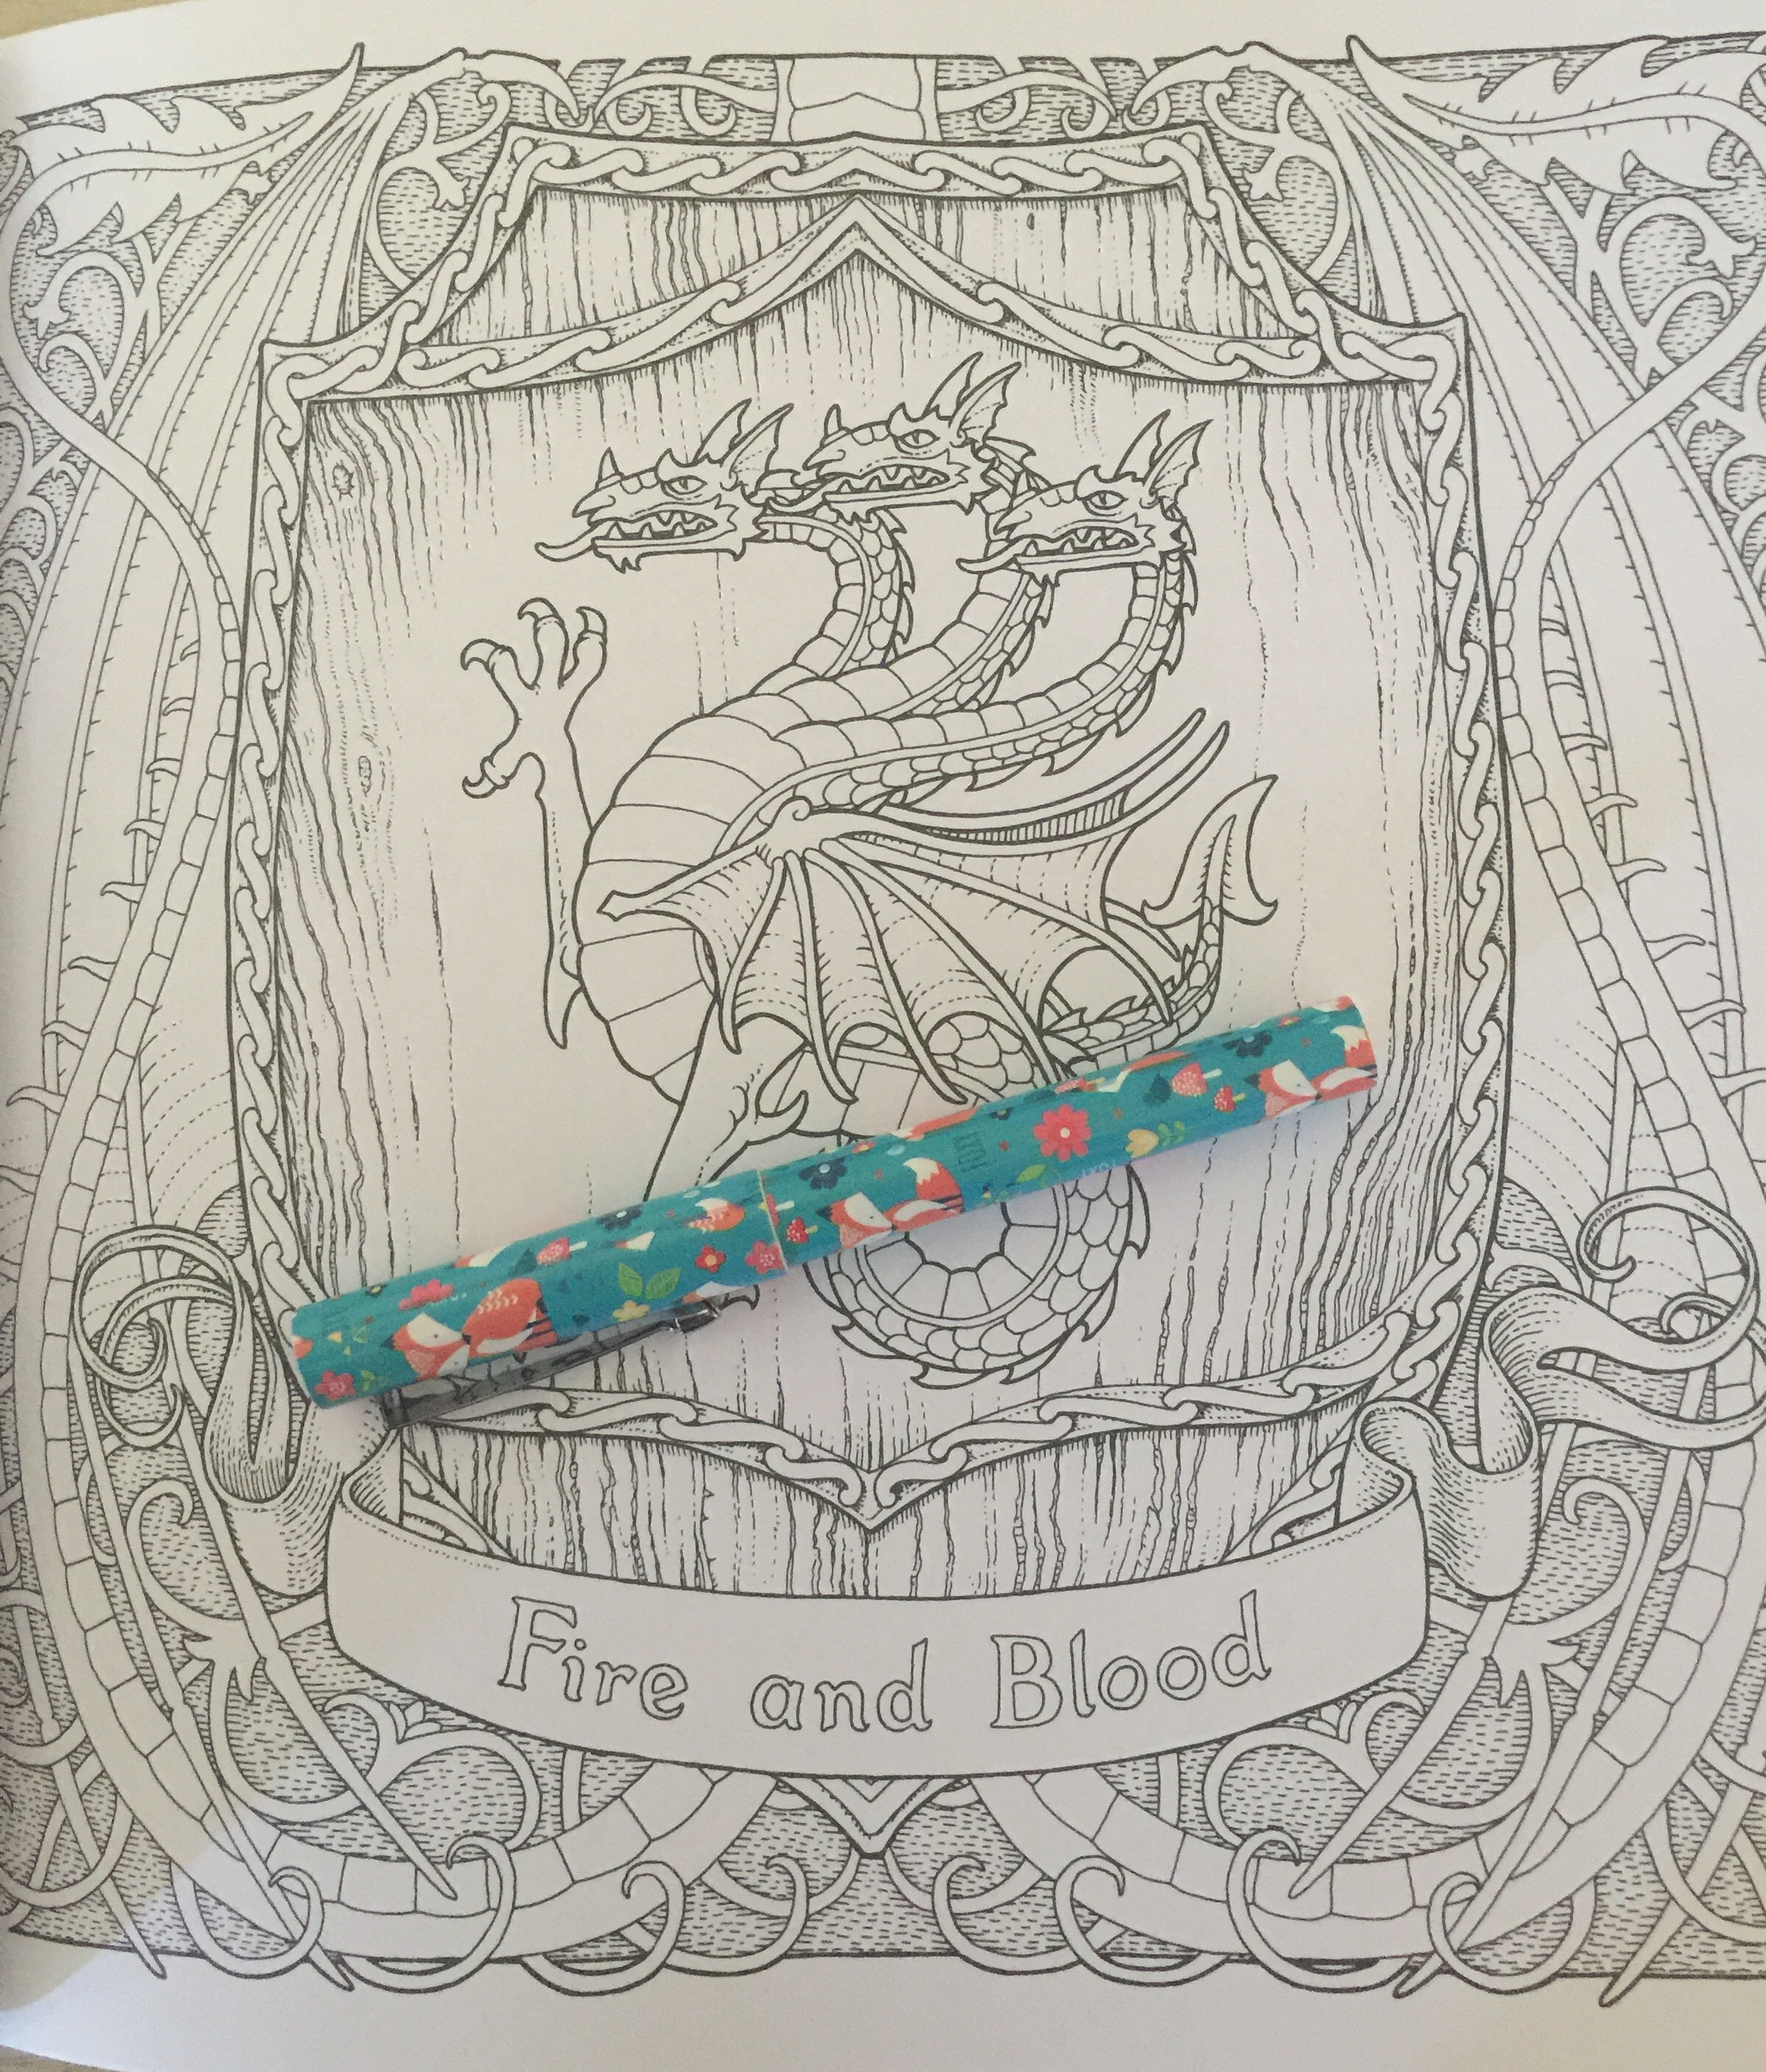 game of thrones coloring got colouring book adult colour color pencils stress relief mindfulness reviews art therapy fineliners